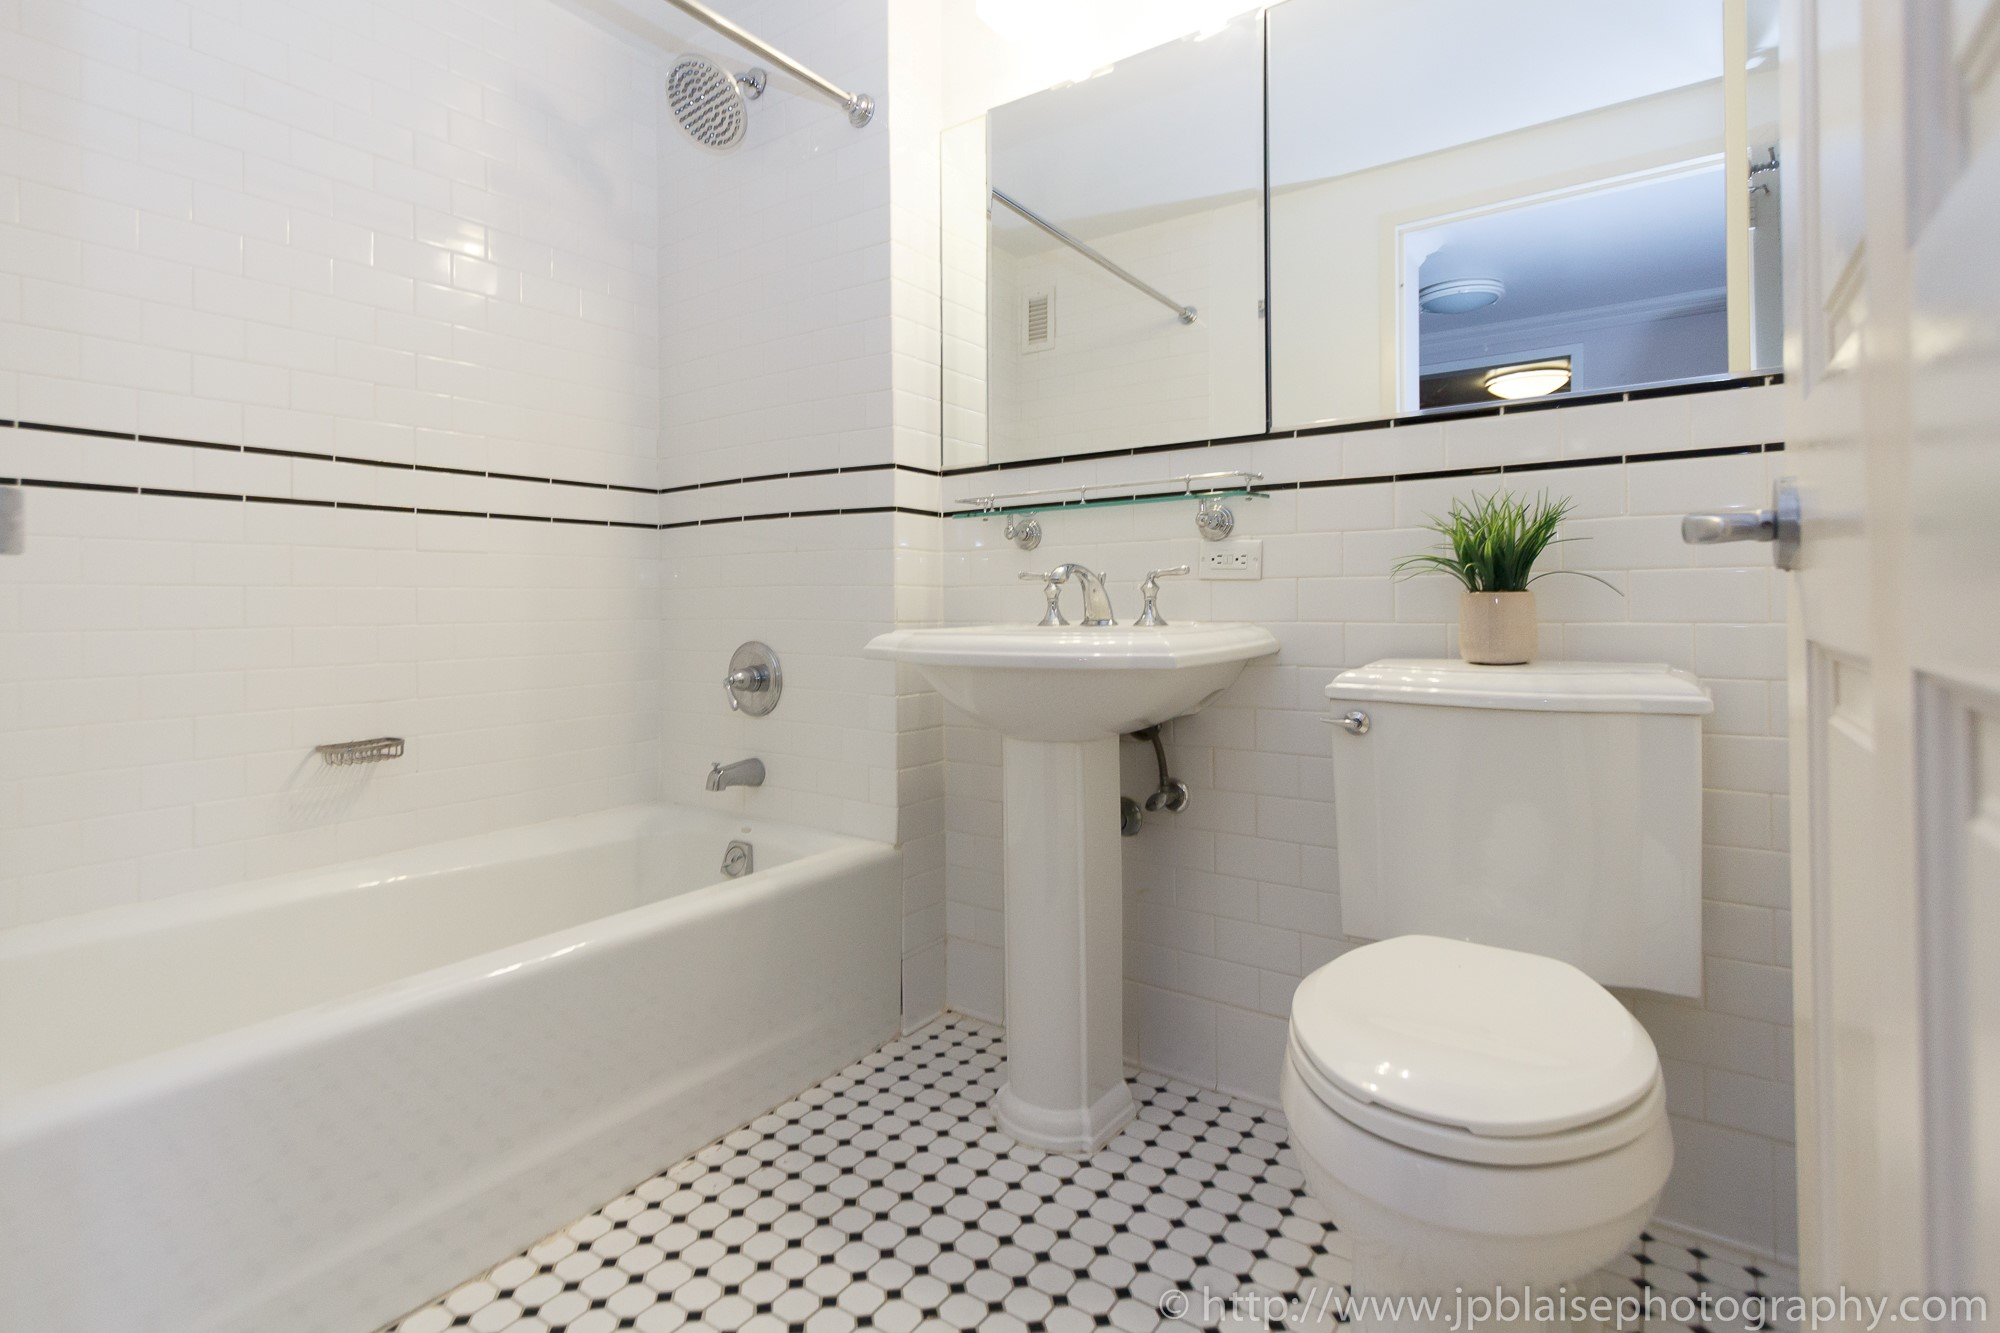 NYC two bedroom apartment photographer central harlem condo unit new york city living room bathroom